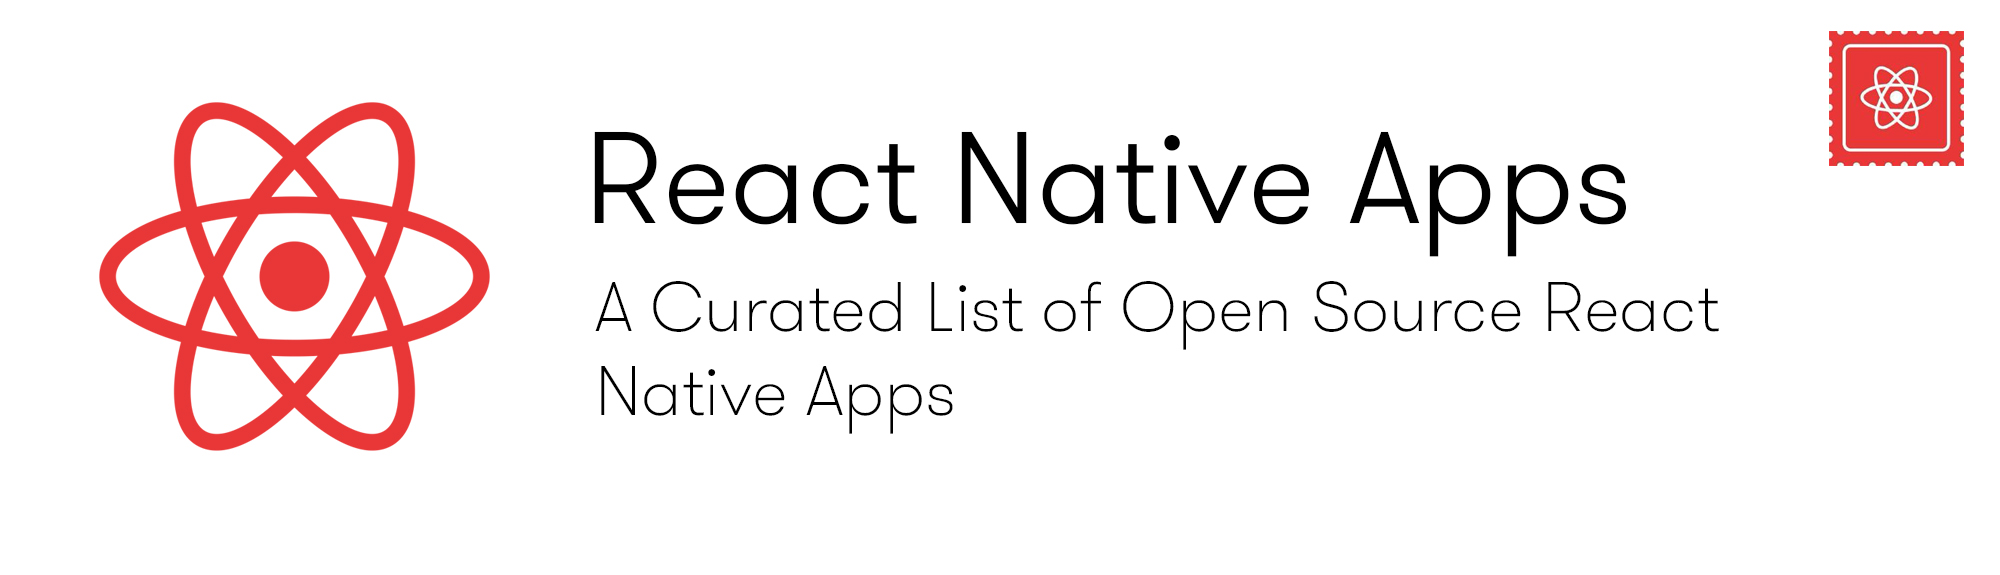 GitHub - ReactNativeNews/React-Native-Apps: Curated List of